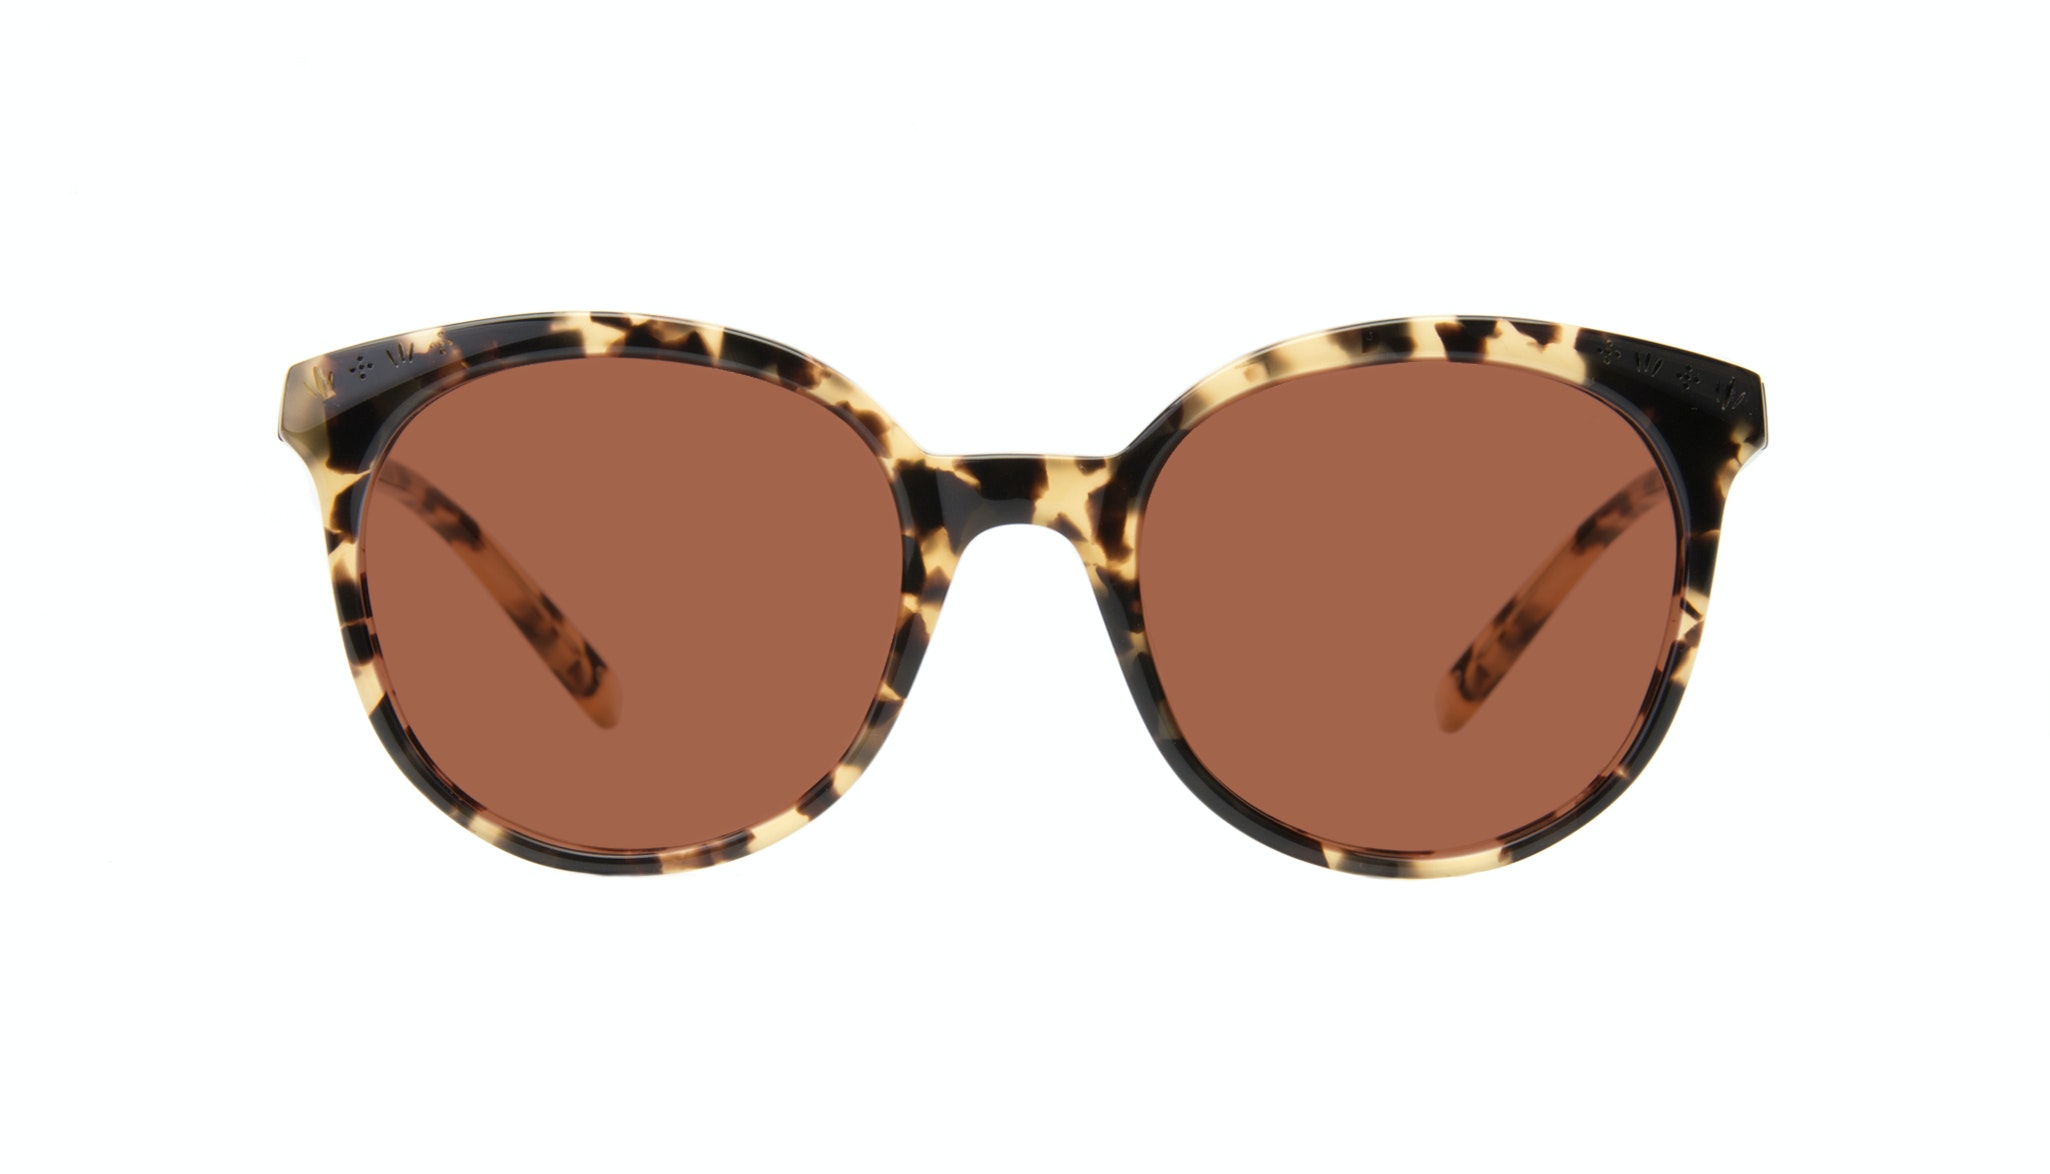 Affordable Fashion Glasses Round Sunglasses Women Must Tortoise